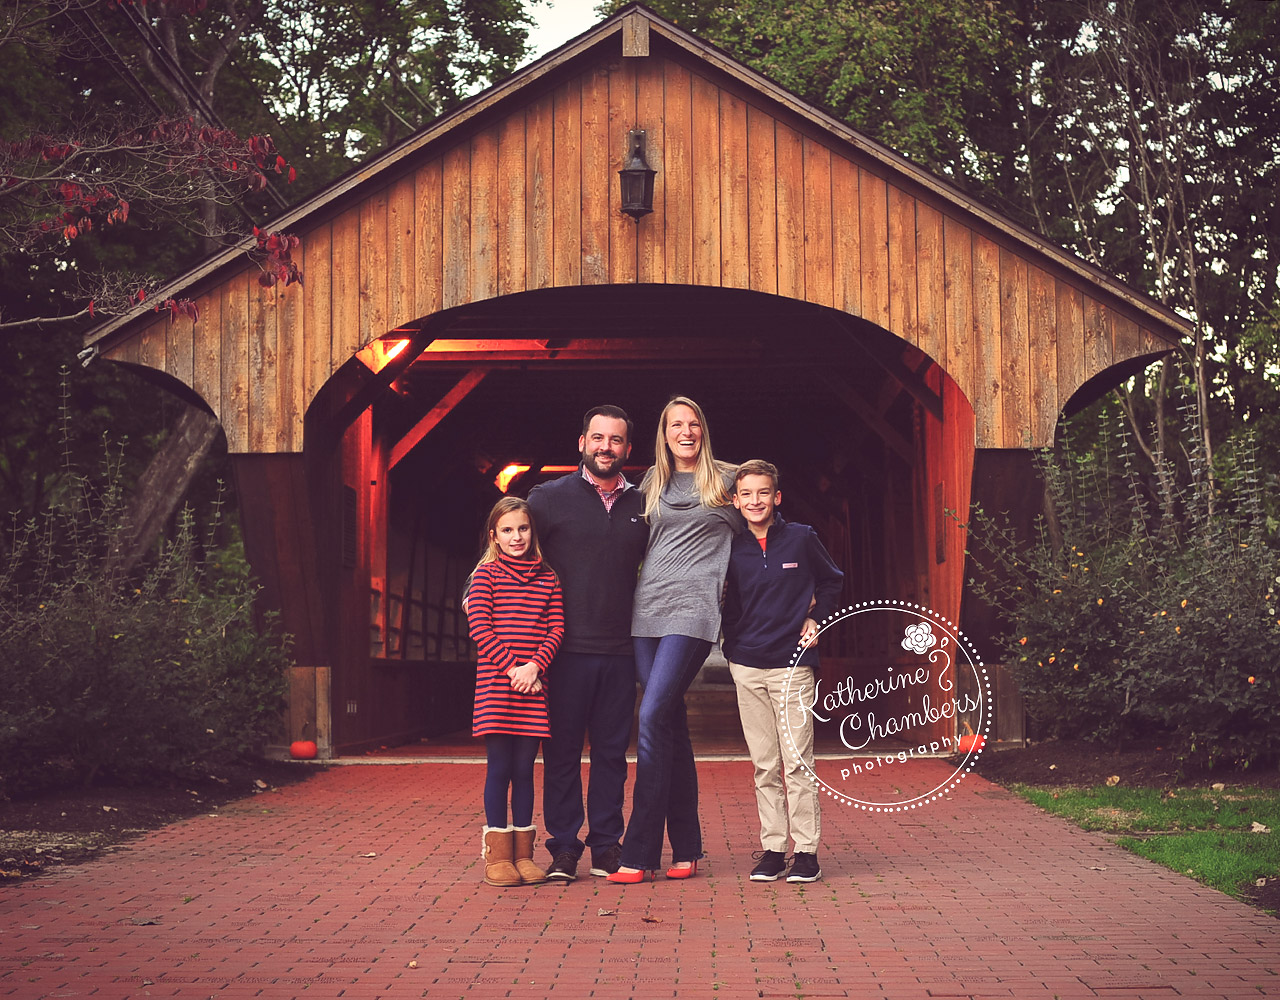 Best Family Photographer Cleveland, Family of 4, Covered Bridge, Fall Family Photos (1)